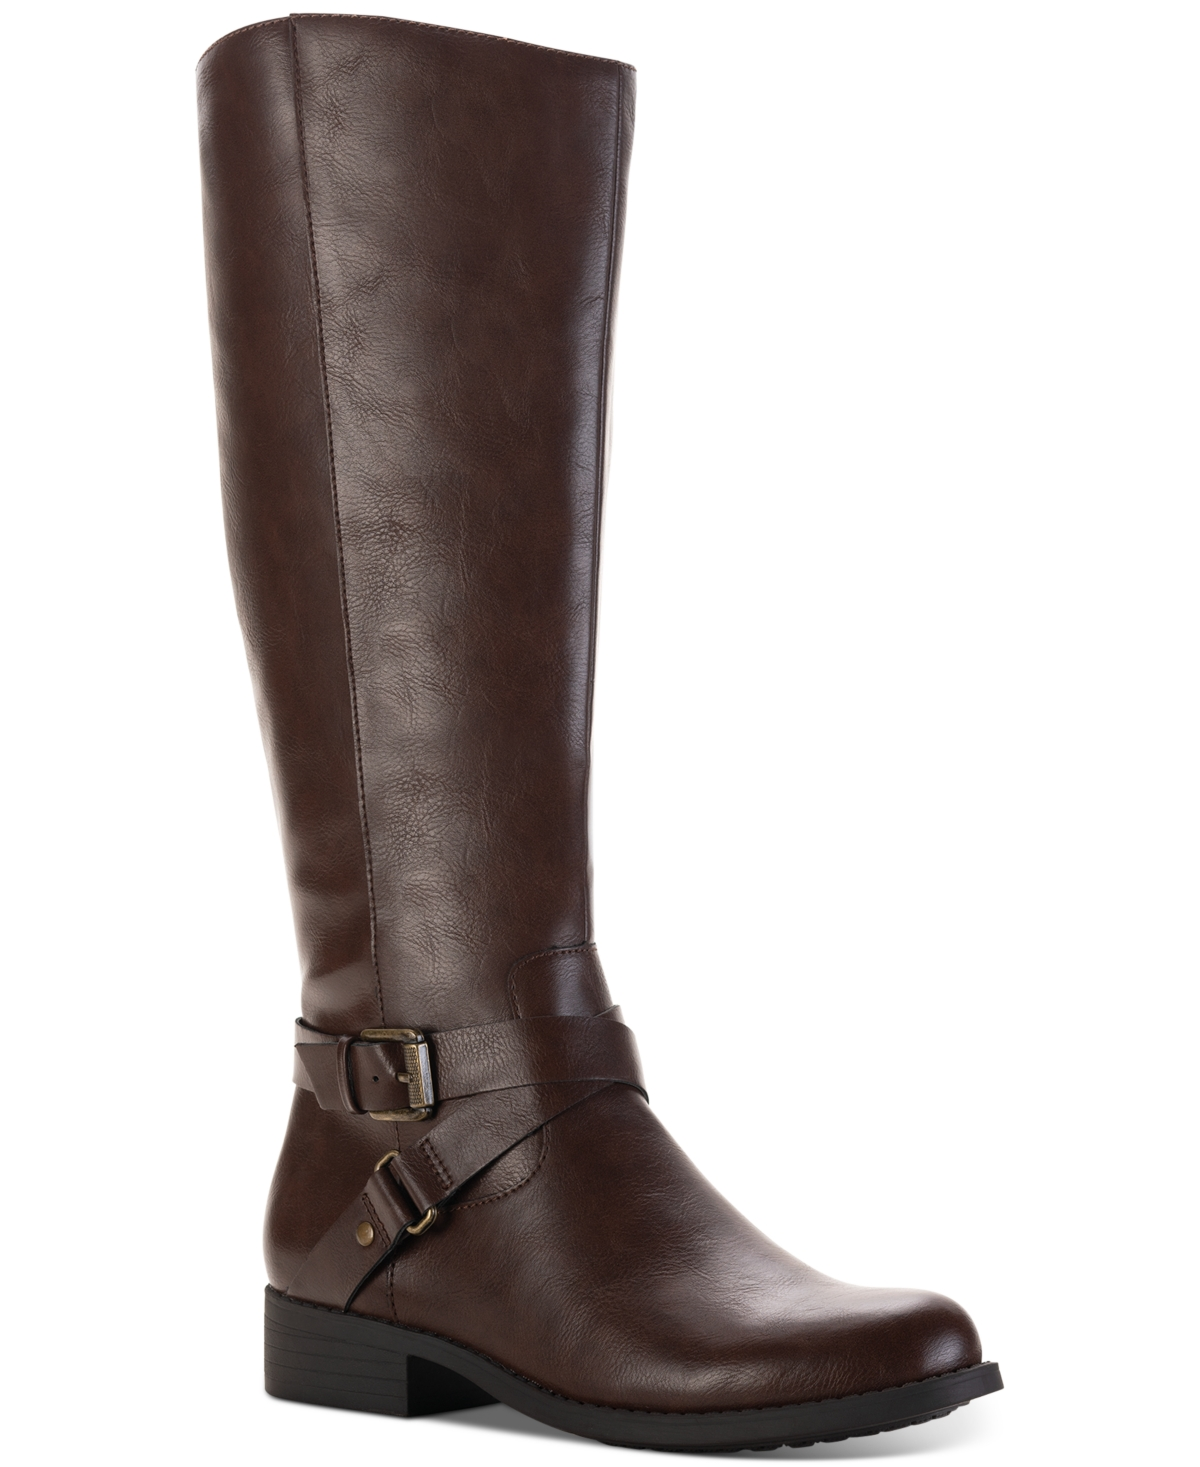 Style & Co Marliee Riding Boots, Created for Macy's Women's Shoes